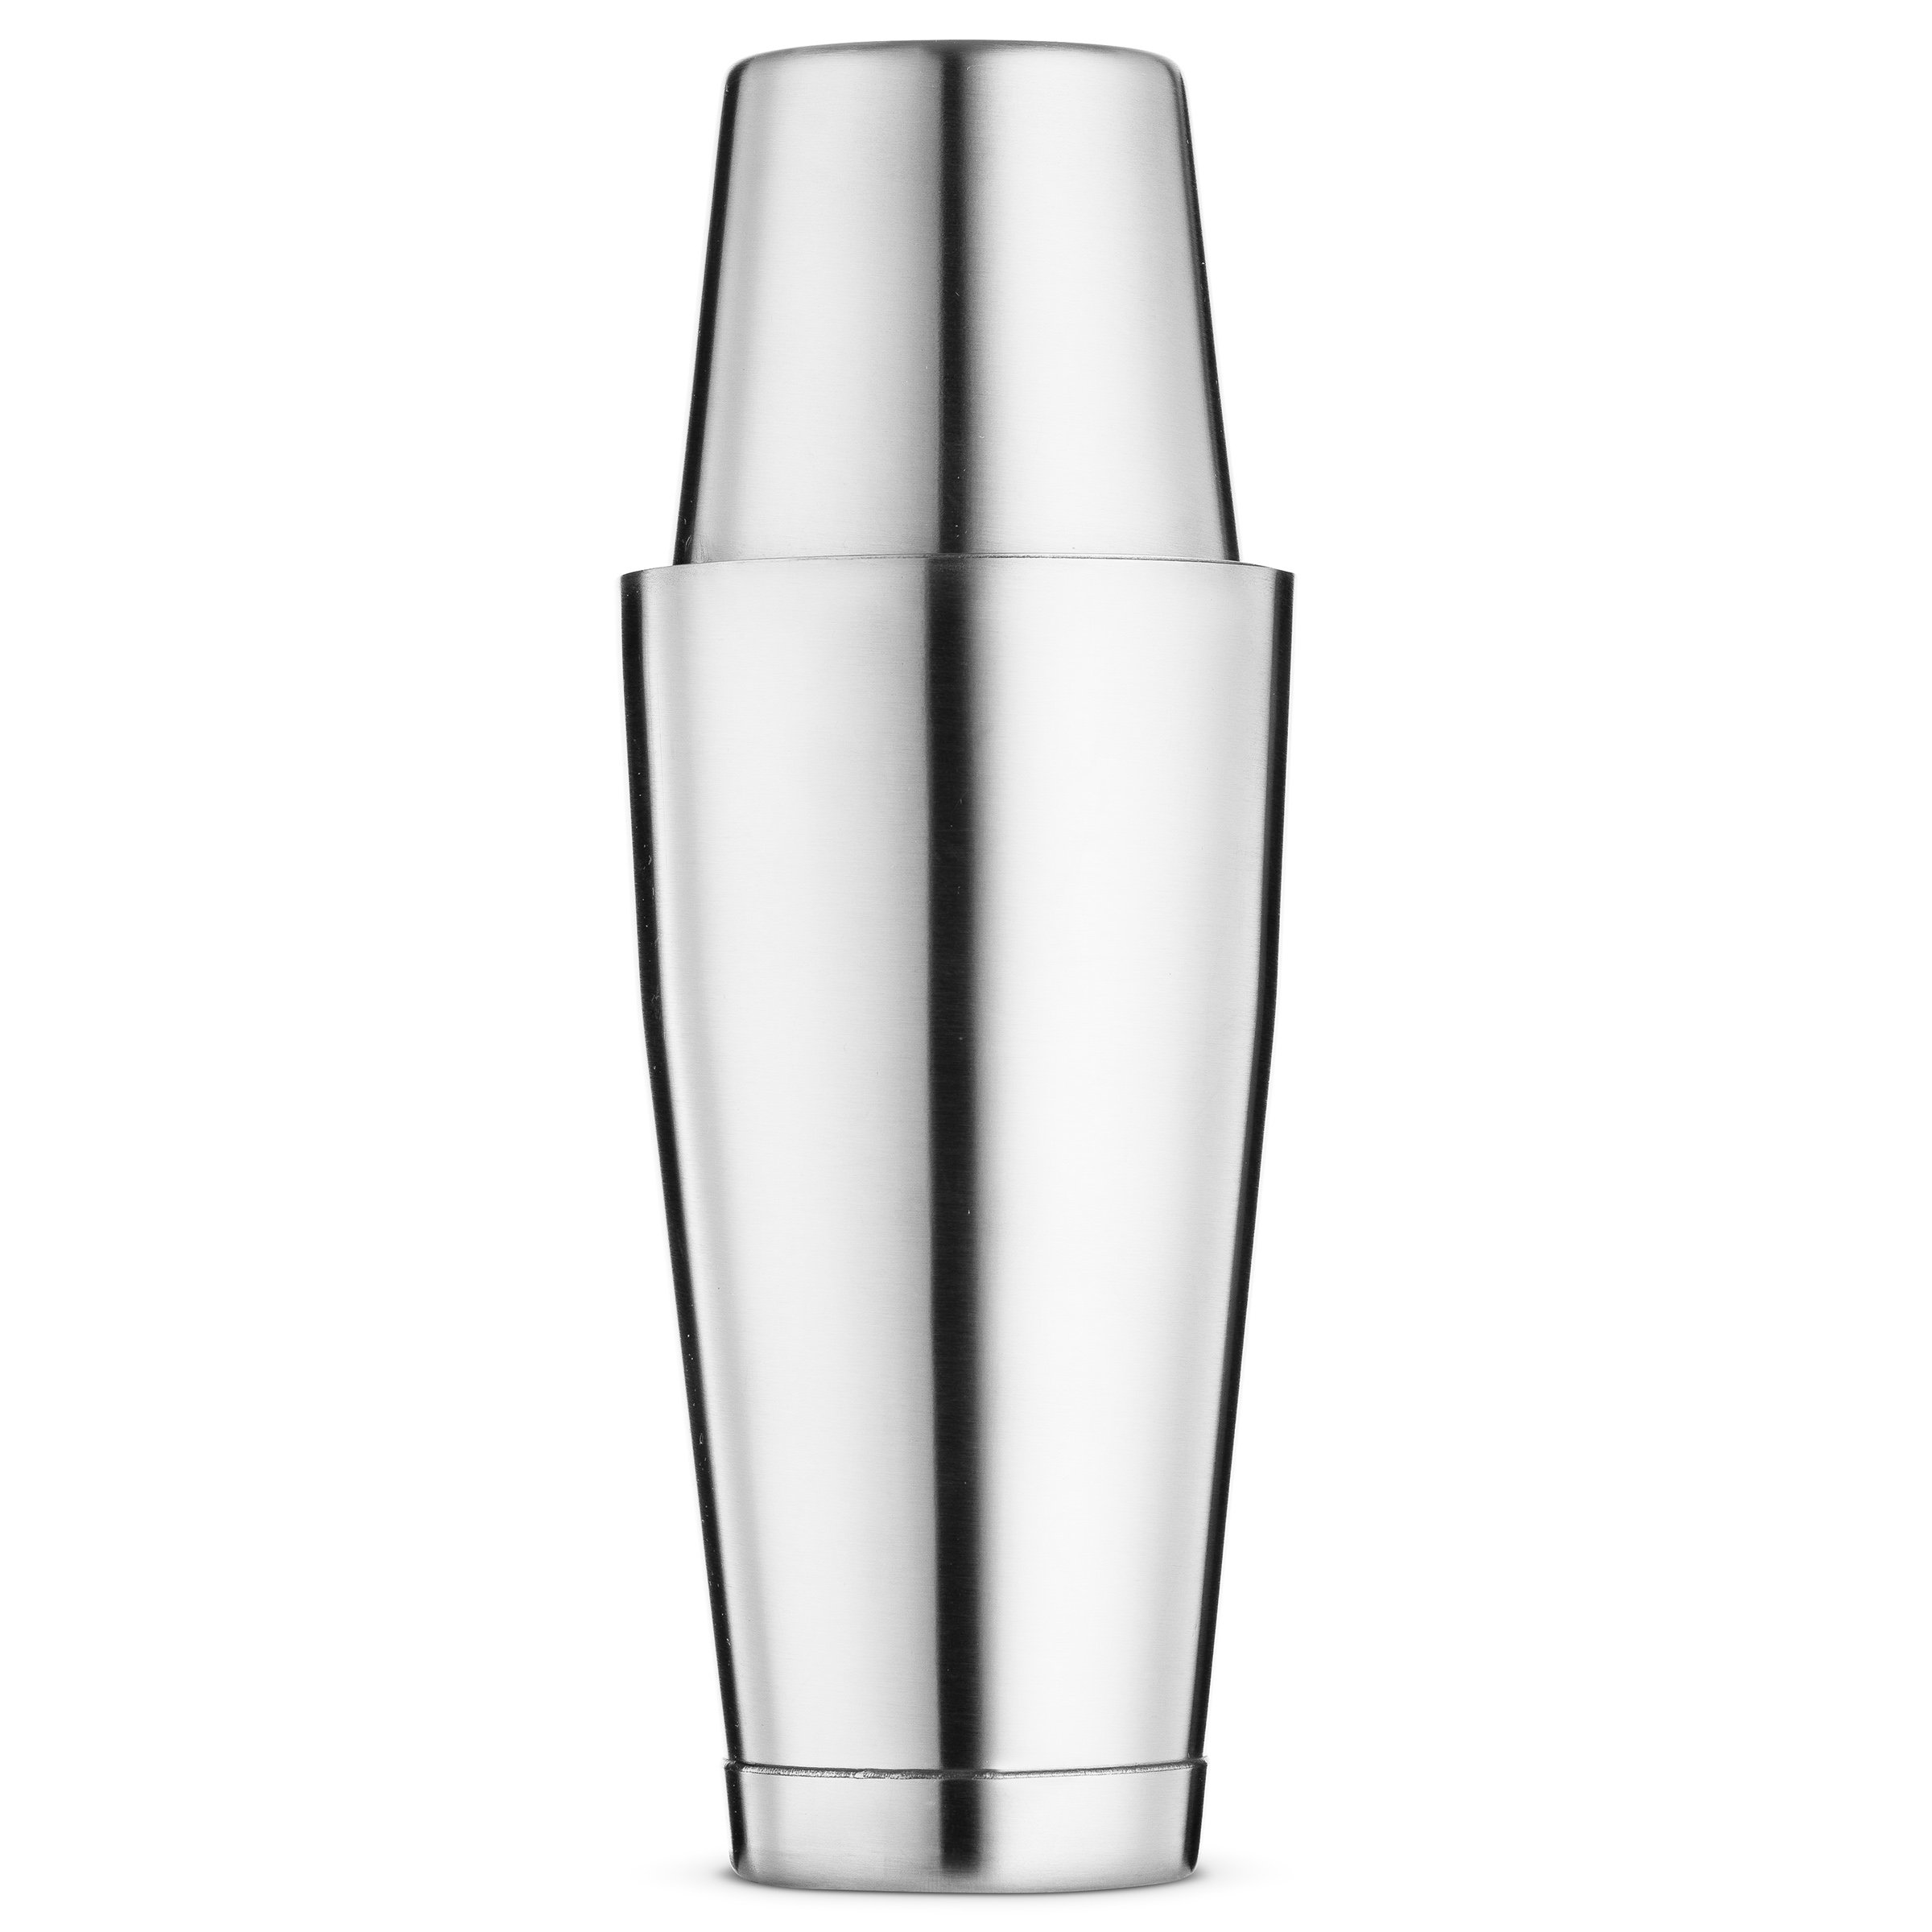 Bartender Boston Cocktail Shaker Set - Includes 28oz and 18oz Cocktail Shaker - 18/8 Durable Food Grade Stainless Steel Bar Shaker Set, Built with Heavy Weighted Shaker Tins For a Perfect Balance